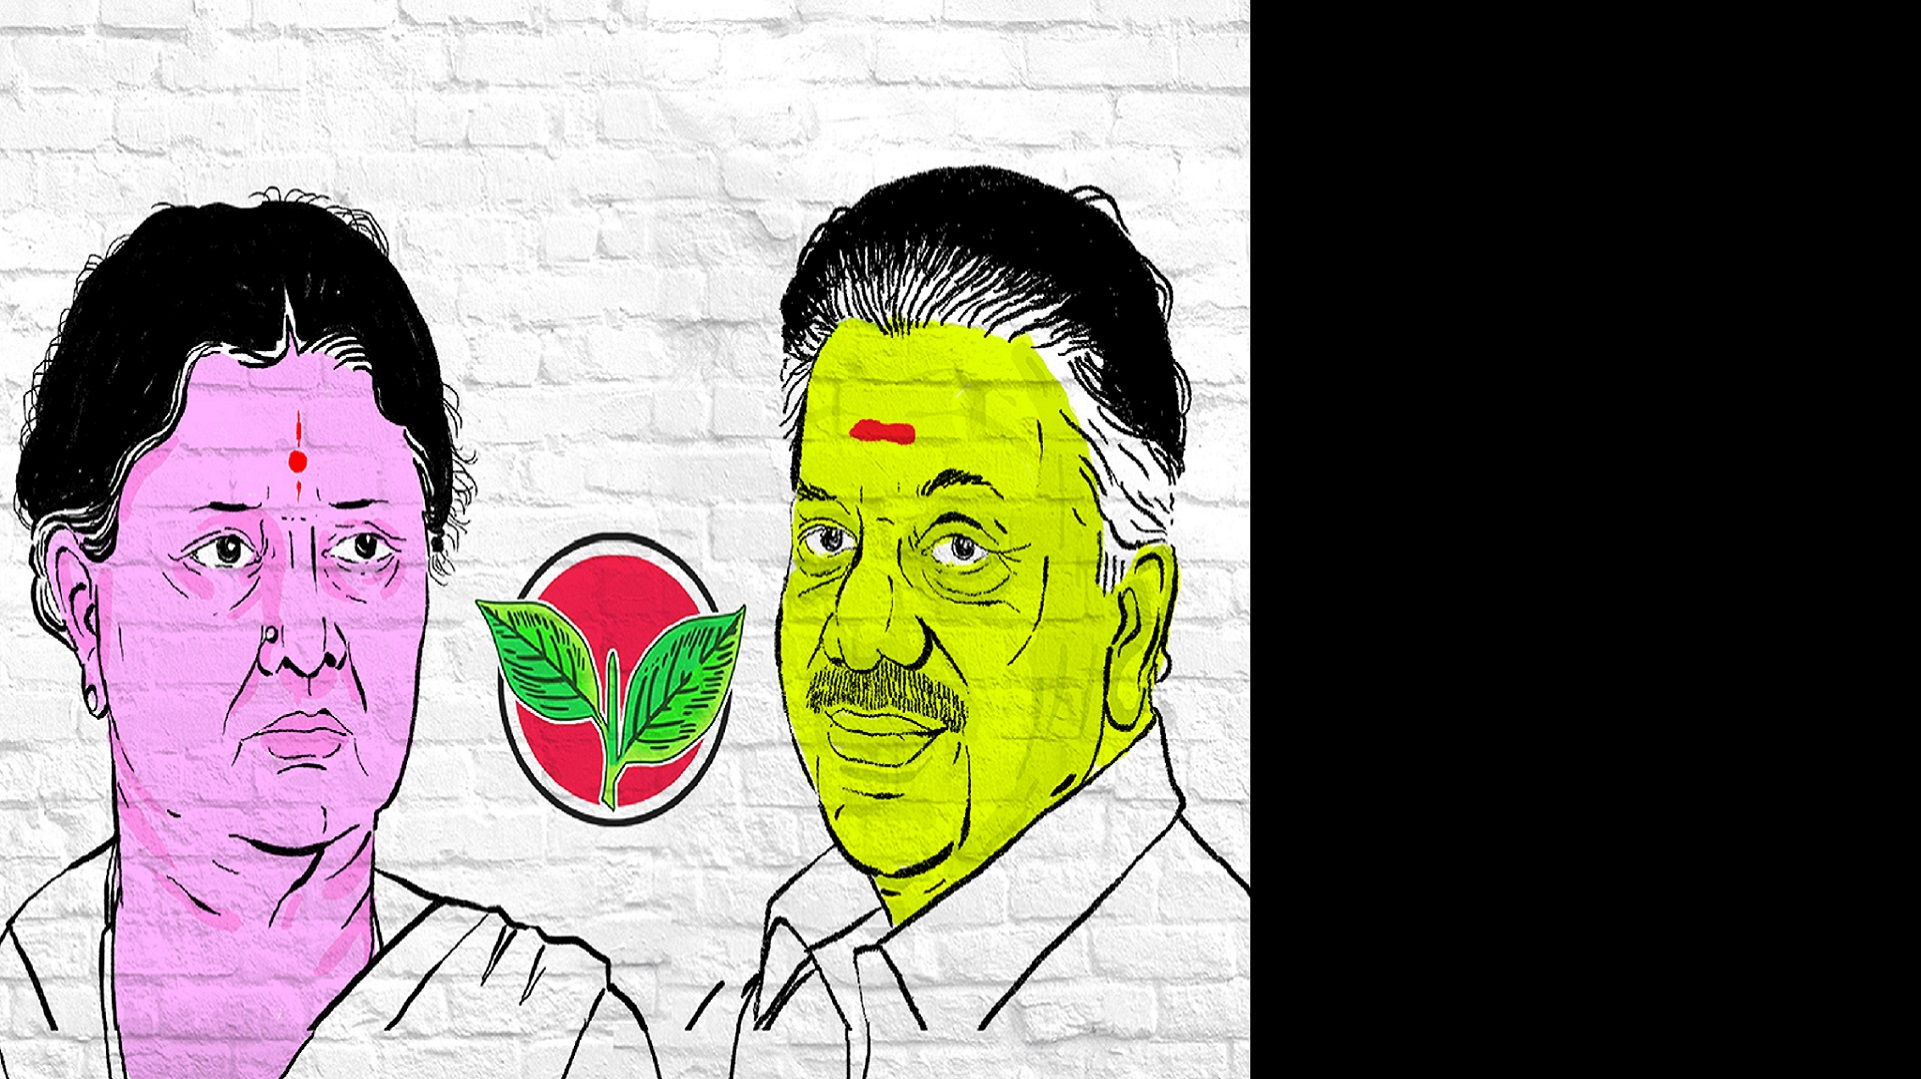 Meet the cast of Tamil Nadu's political drama